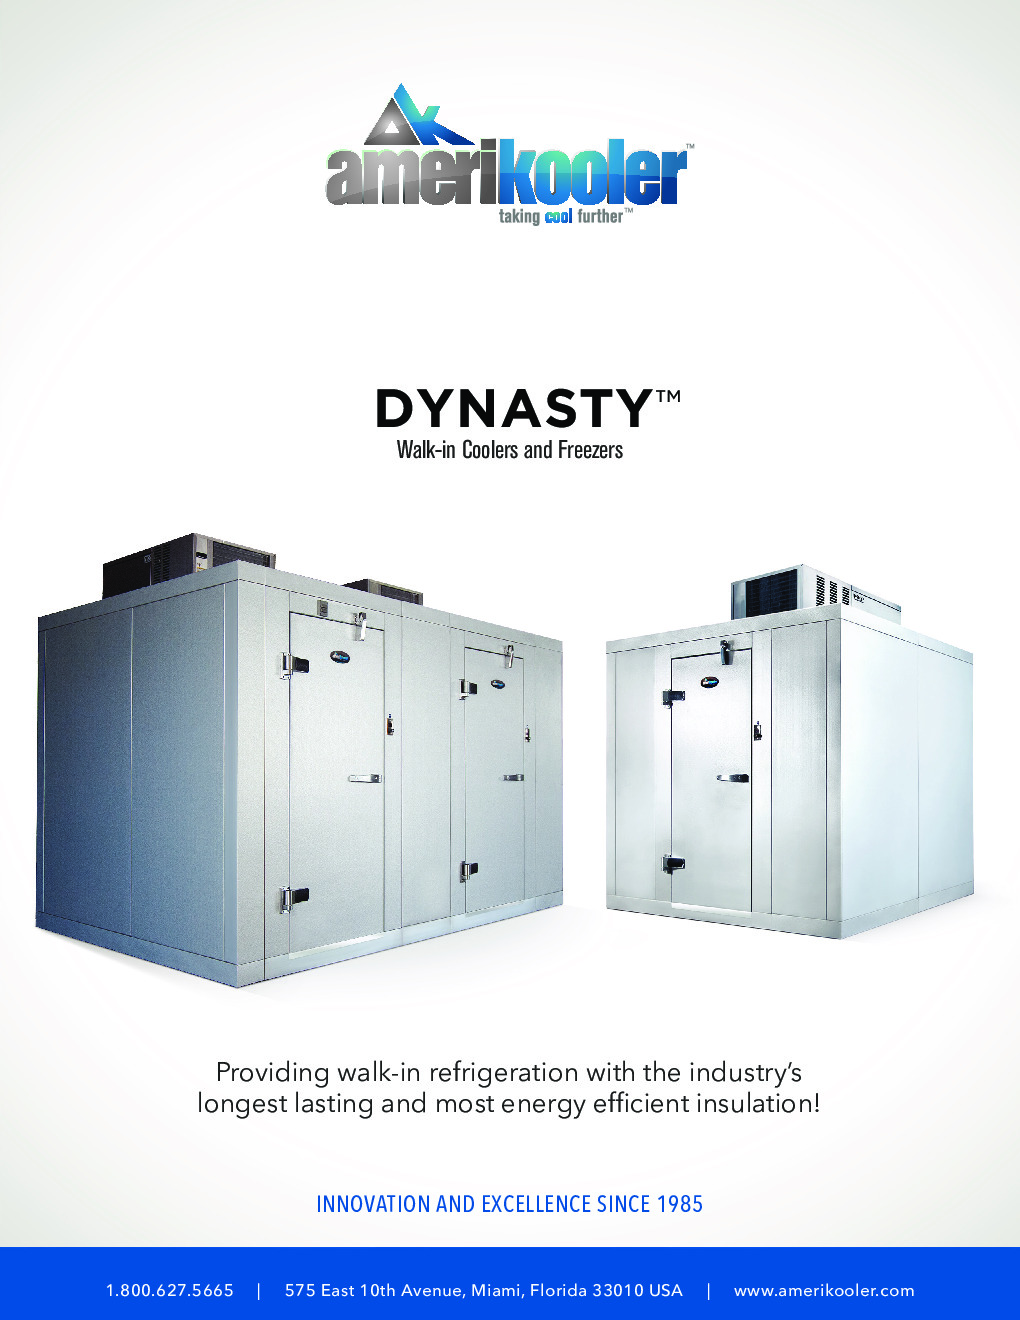 AmeriKooler DW081677F-5/11-RM 8' X 16' Walk-In Cooler, 11' L Cooler with Floor and 5' L Freezer, Remote